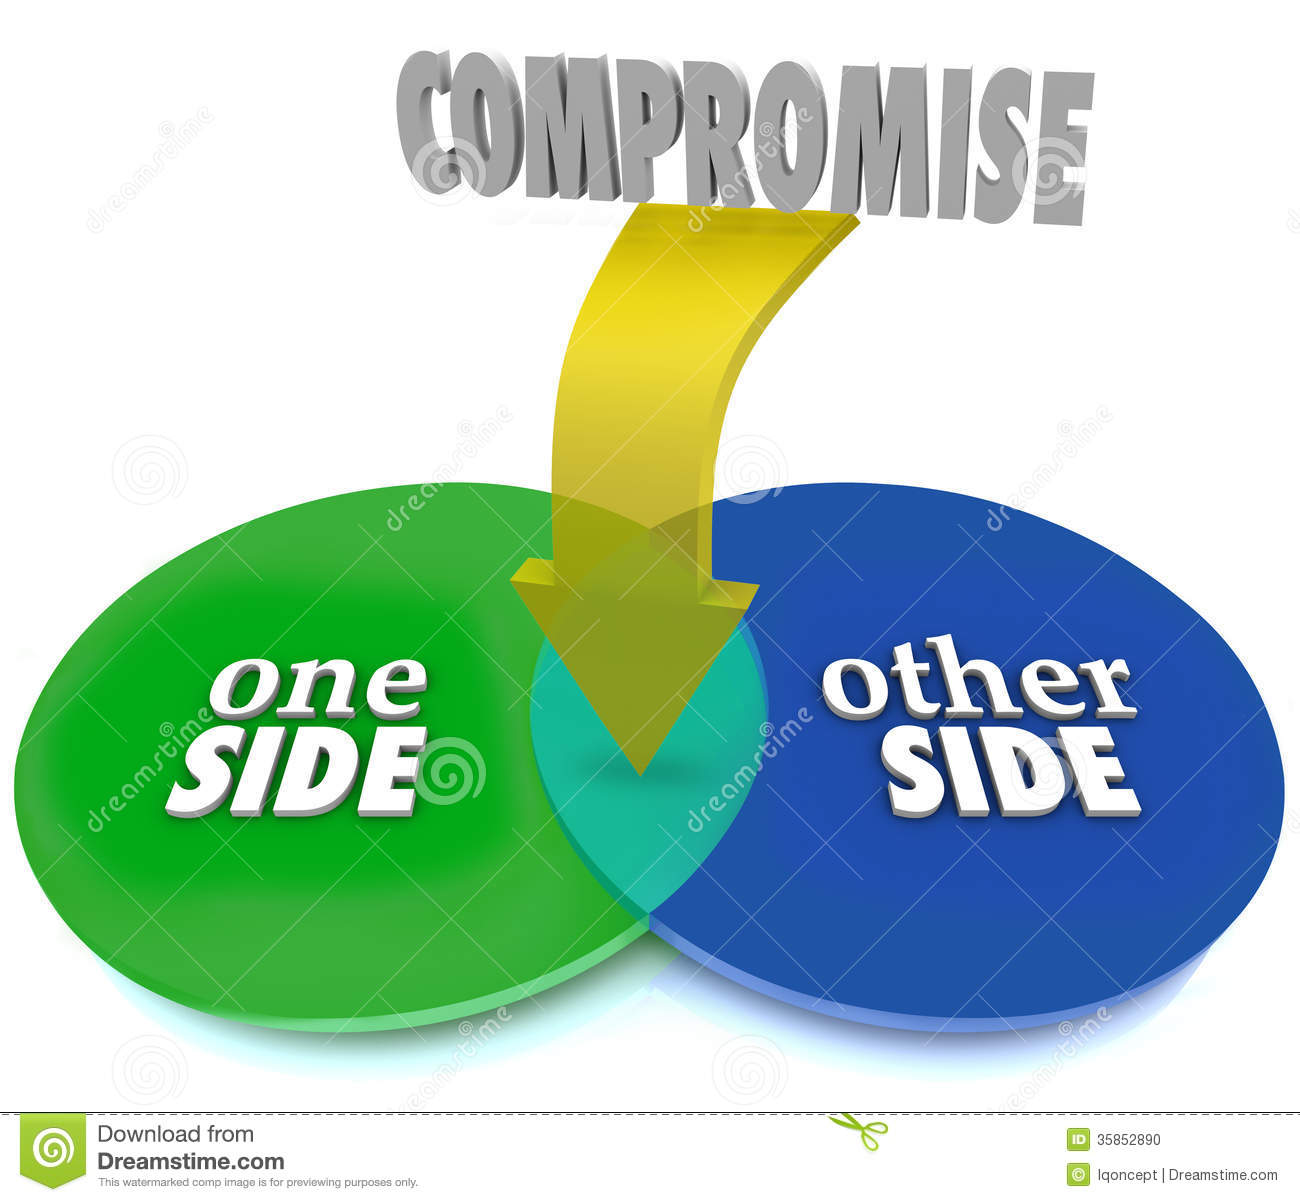 Compromise venn diagram negotiate settlement stock illustration compromise venn diagram negotiate settlement pooptronica